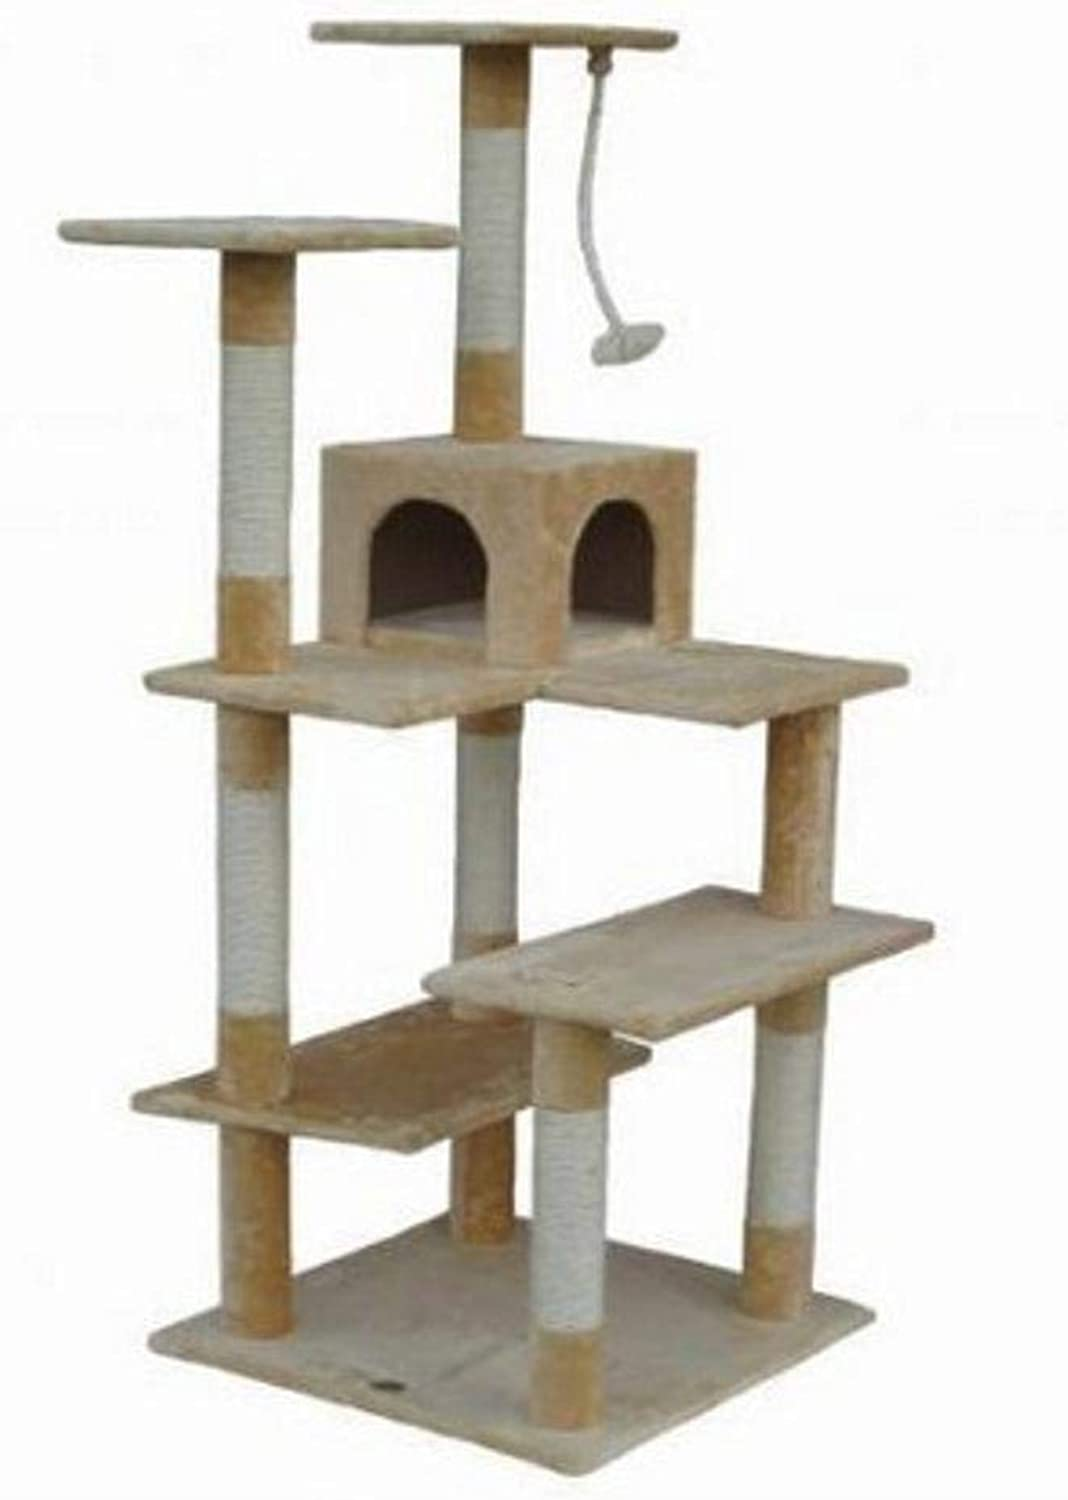 Hexiansheng Cat Climb Trees Multilayer Cat grinding claw toy cat Litter cat cat Scratch Board cat Jumping pet toy 50  60  170cm